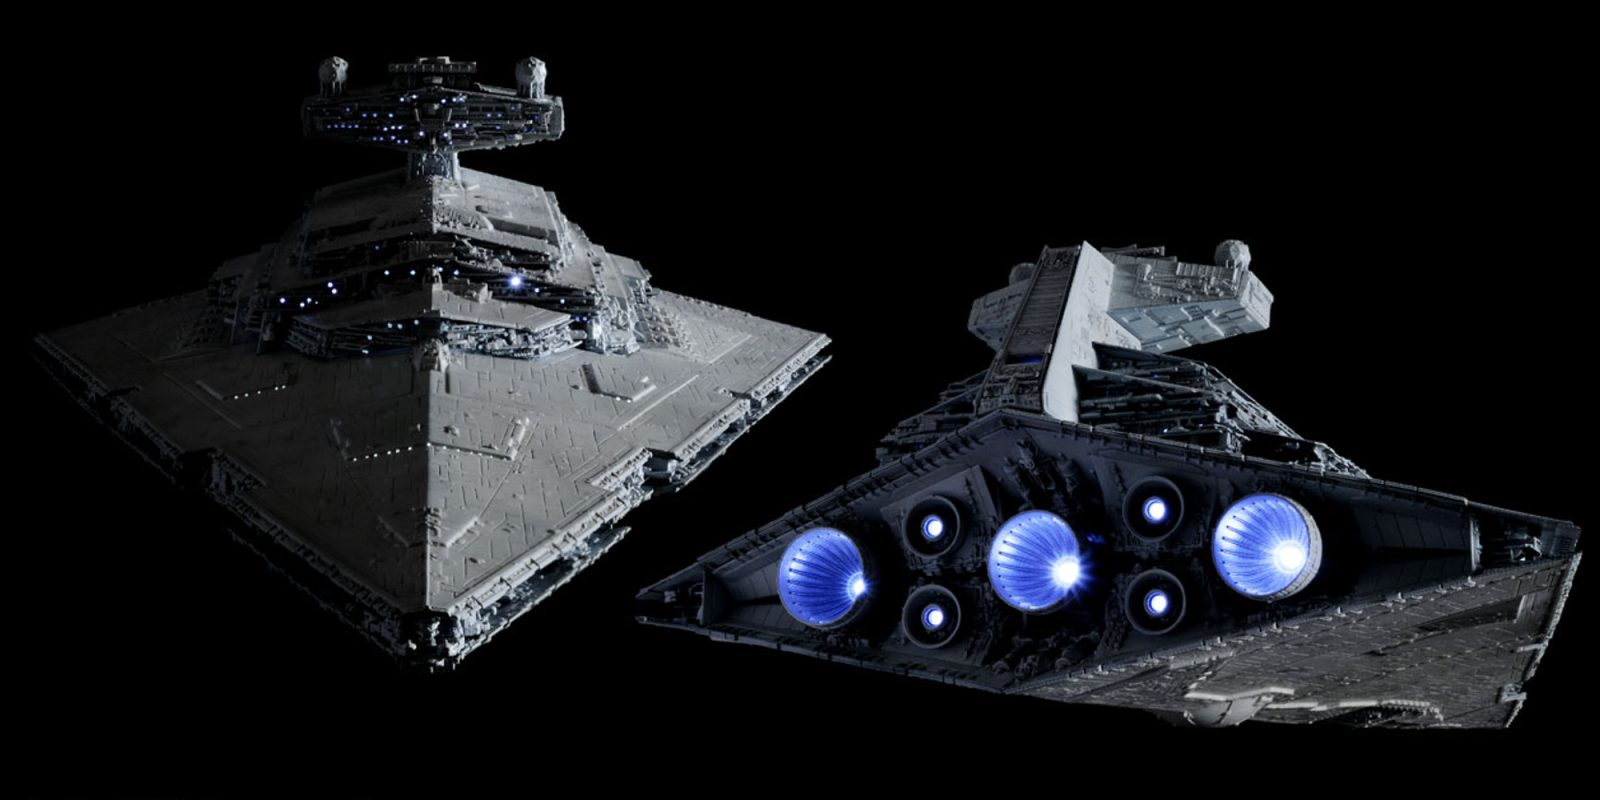 Bandai Star Destroyer Model Kit is arriving later this year - 9to5Toys